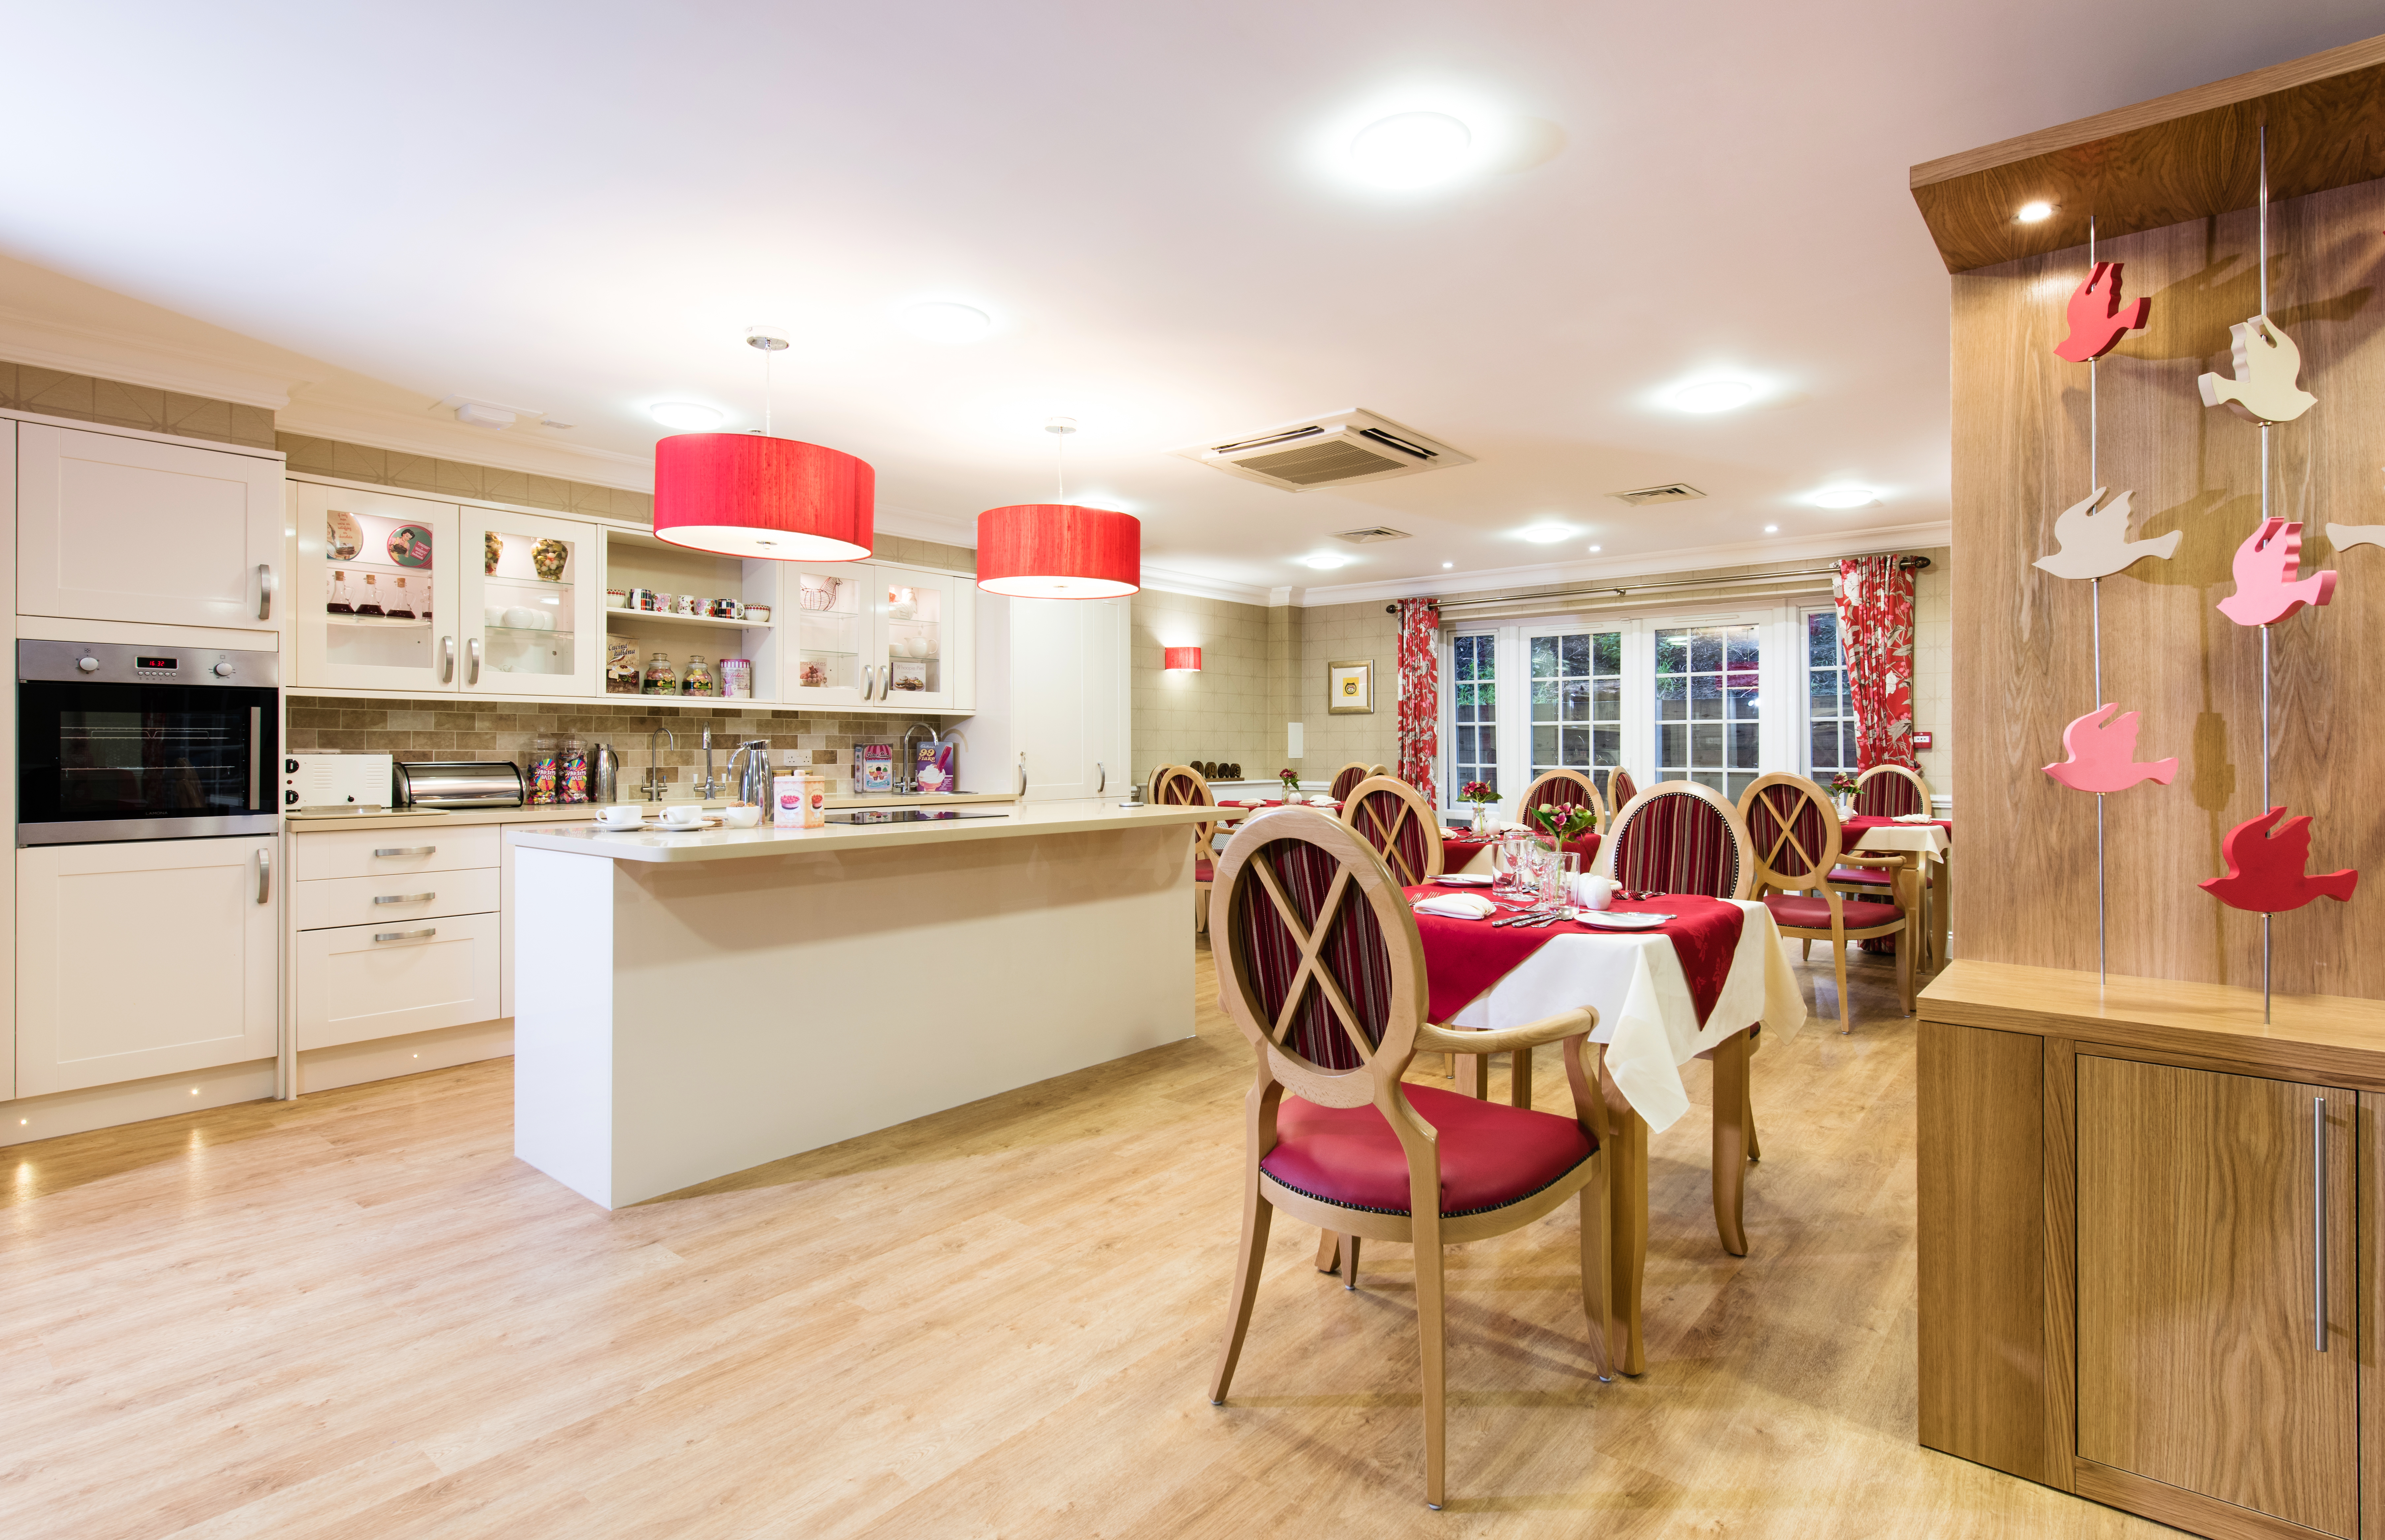 Lakeview Care Home Surrey Award Winning Care Homes in Surrey